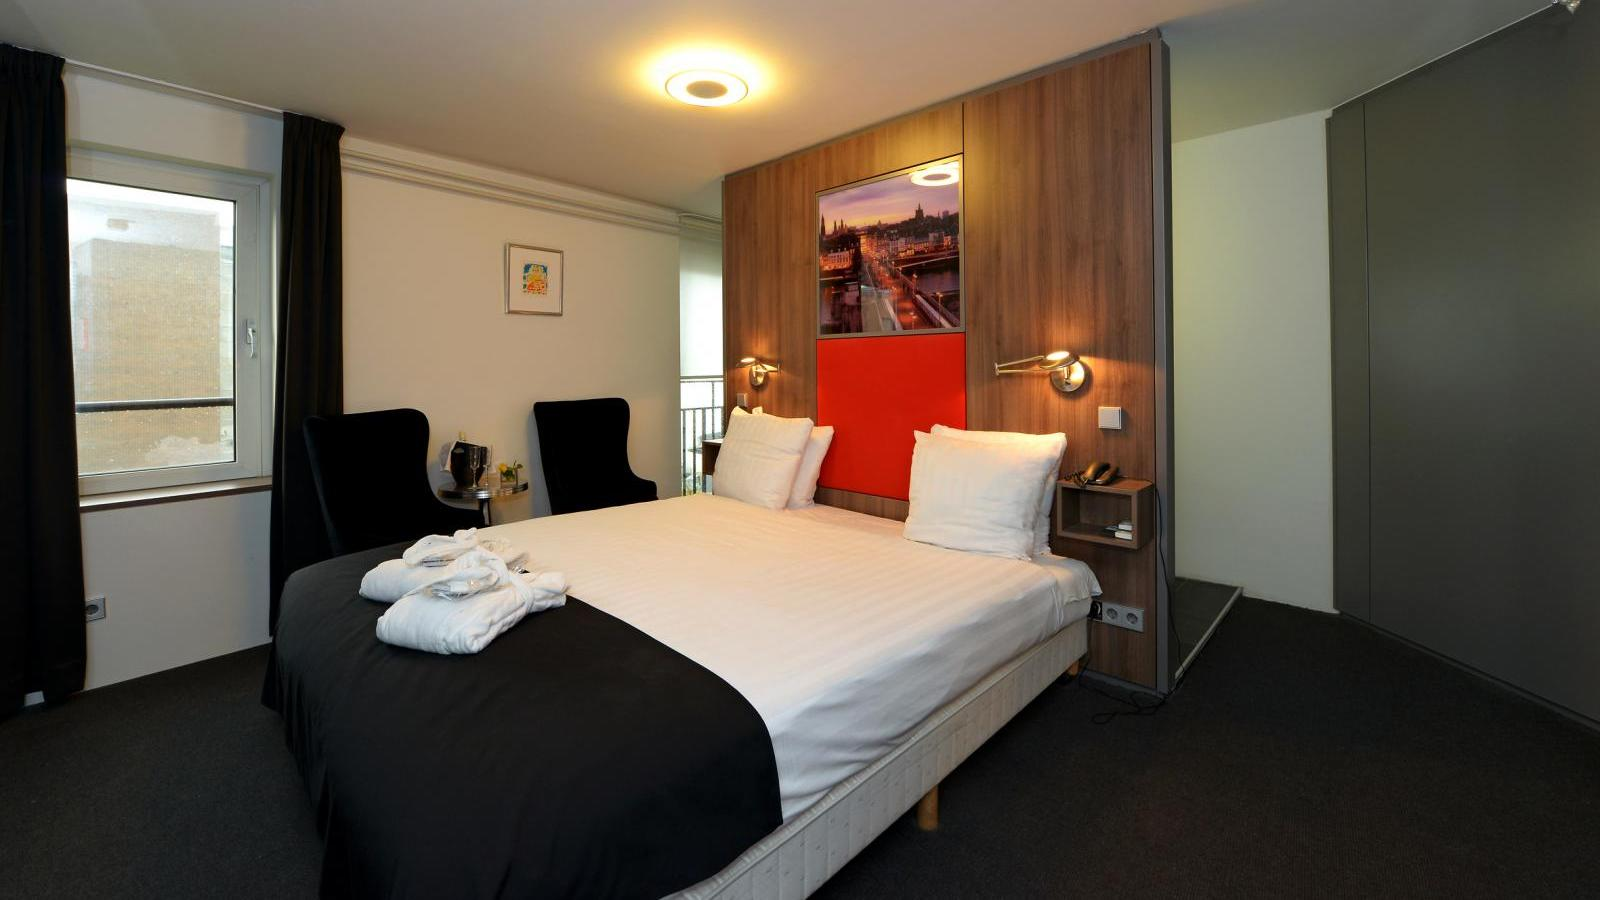 Luxe junior suite apart hotel randwyck maatricht for Appart hotel luxe